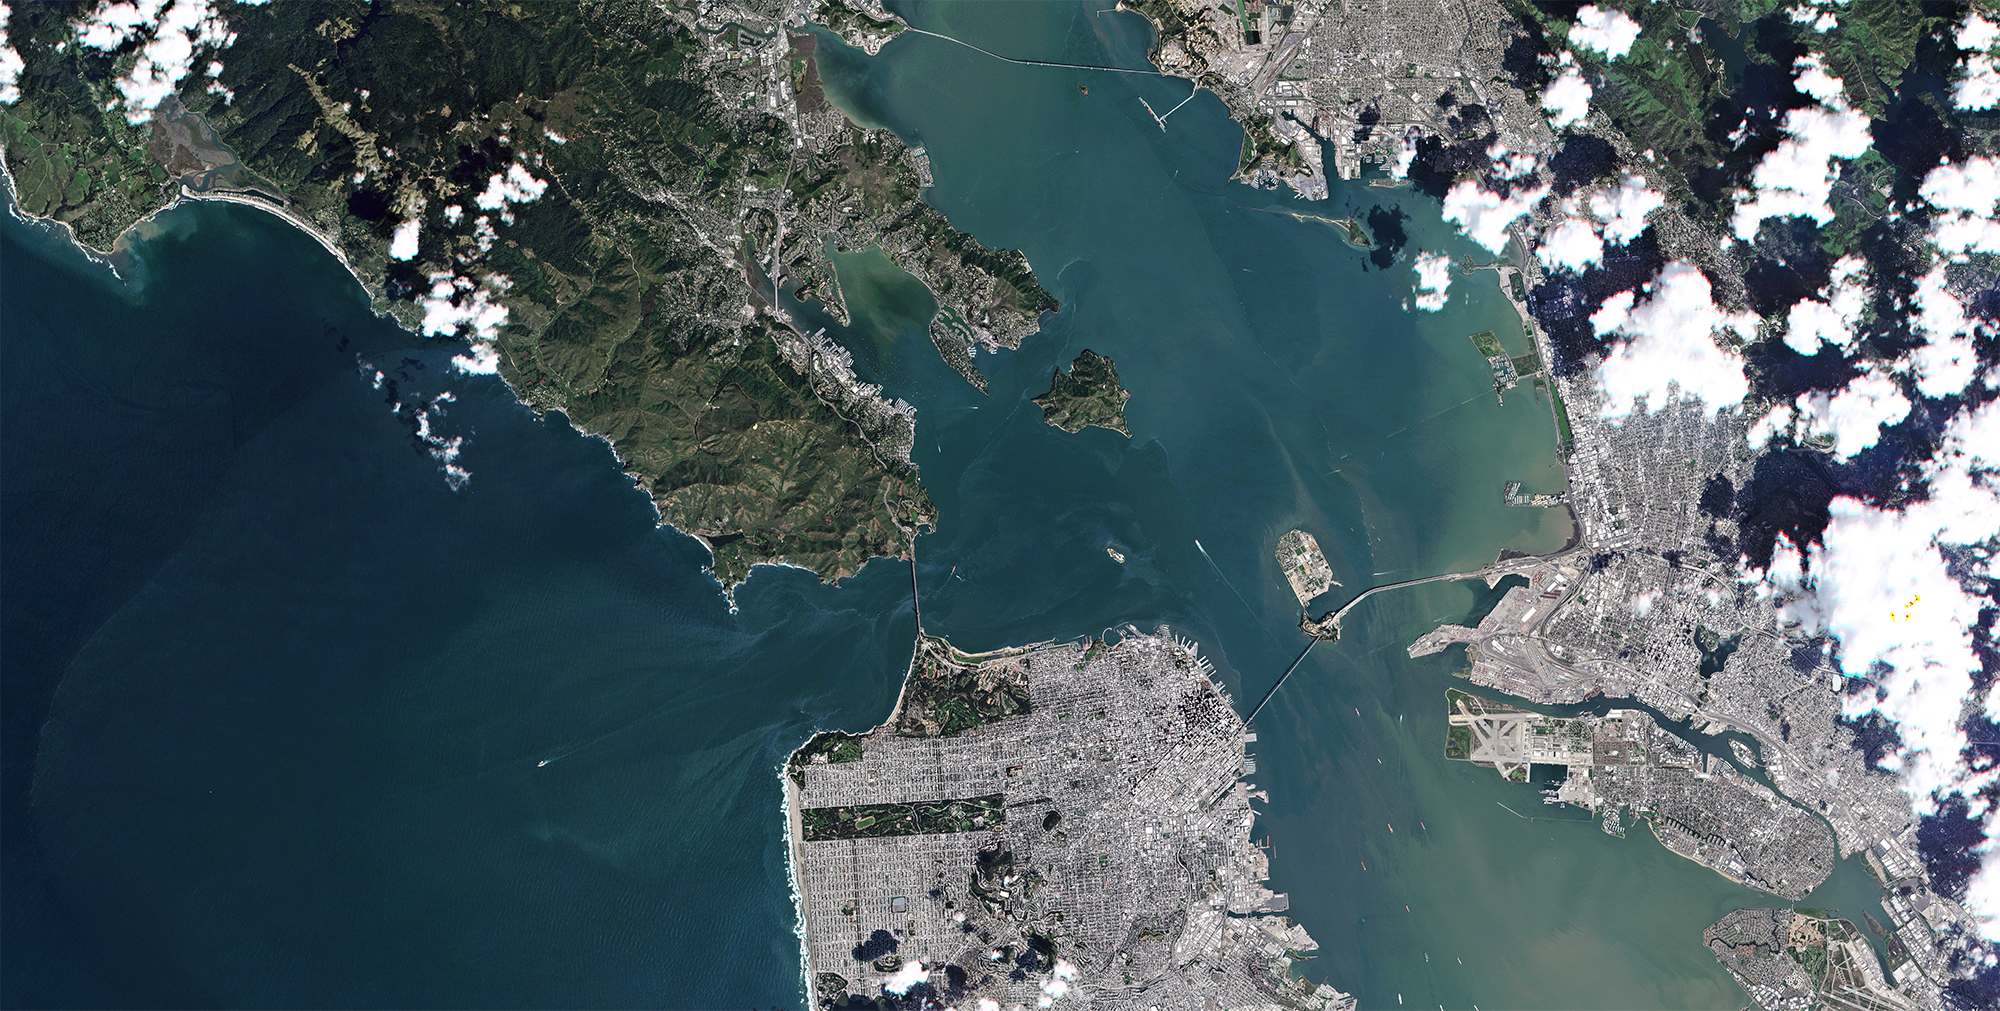 RapidEye last light image of San Francisco, California. © 2020, Planet Labs Inc. All Rights Reserved.